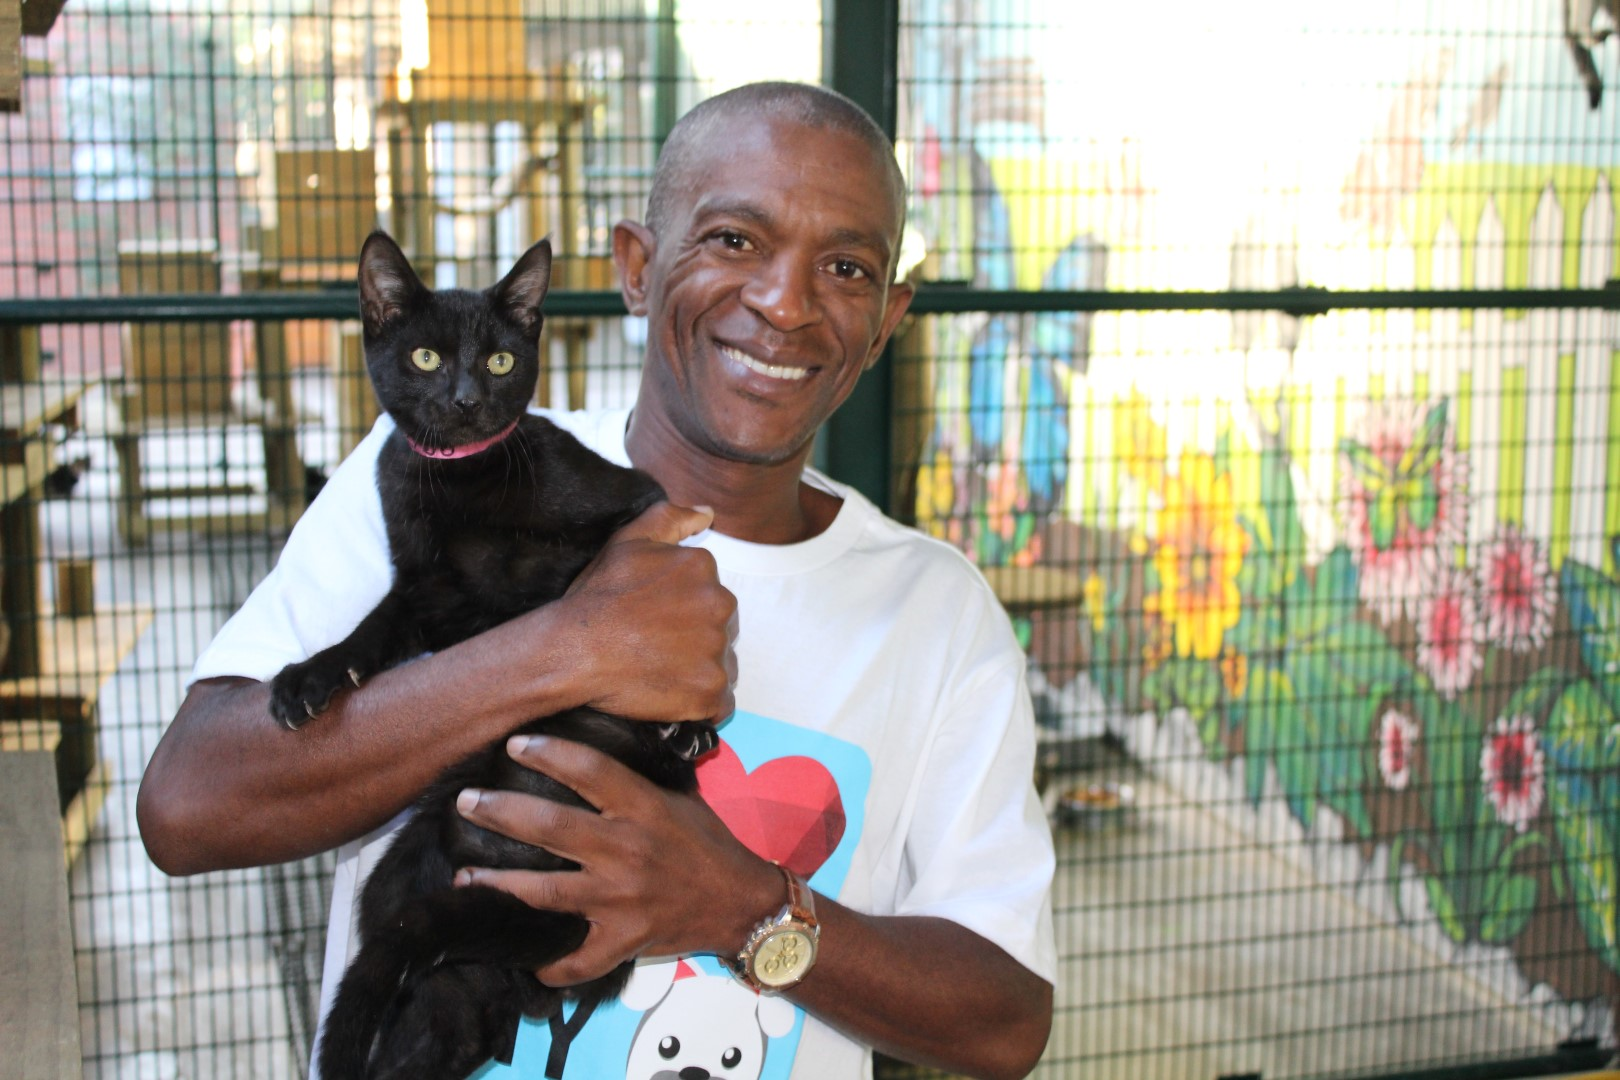 Chief Mthembu will be a number of marathons and races this year to raise funds for the Durban & Coast SPCA.